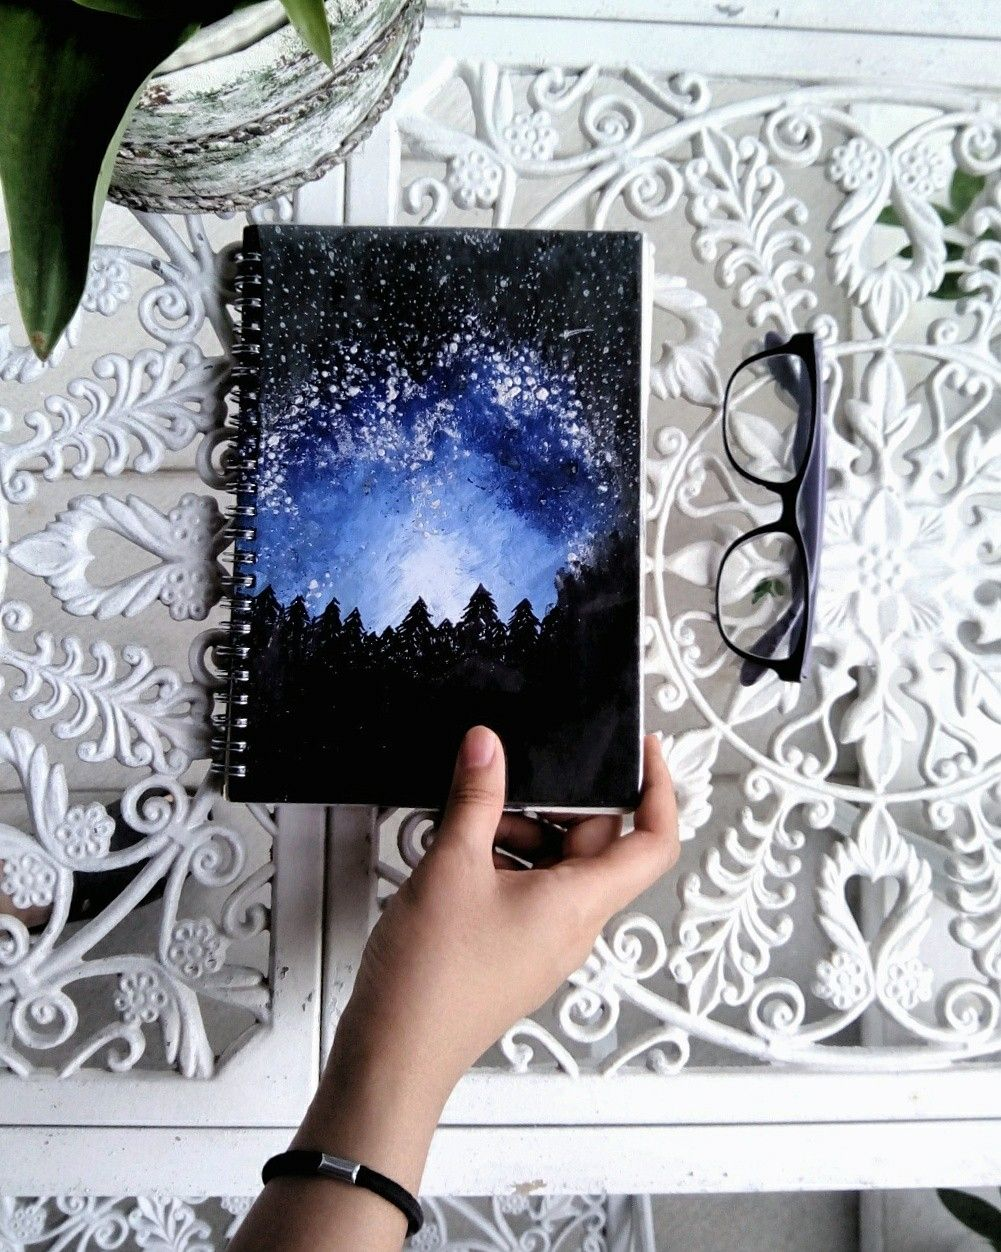 Diy Notebook Cover Of A Starry Blue Night Sky Over The Dark Woods Painted Using Acrylic Paint Diyno Diy Notebook Cover Diy Notebook Custom Notebook Covers